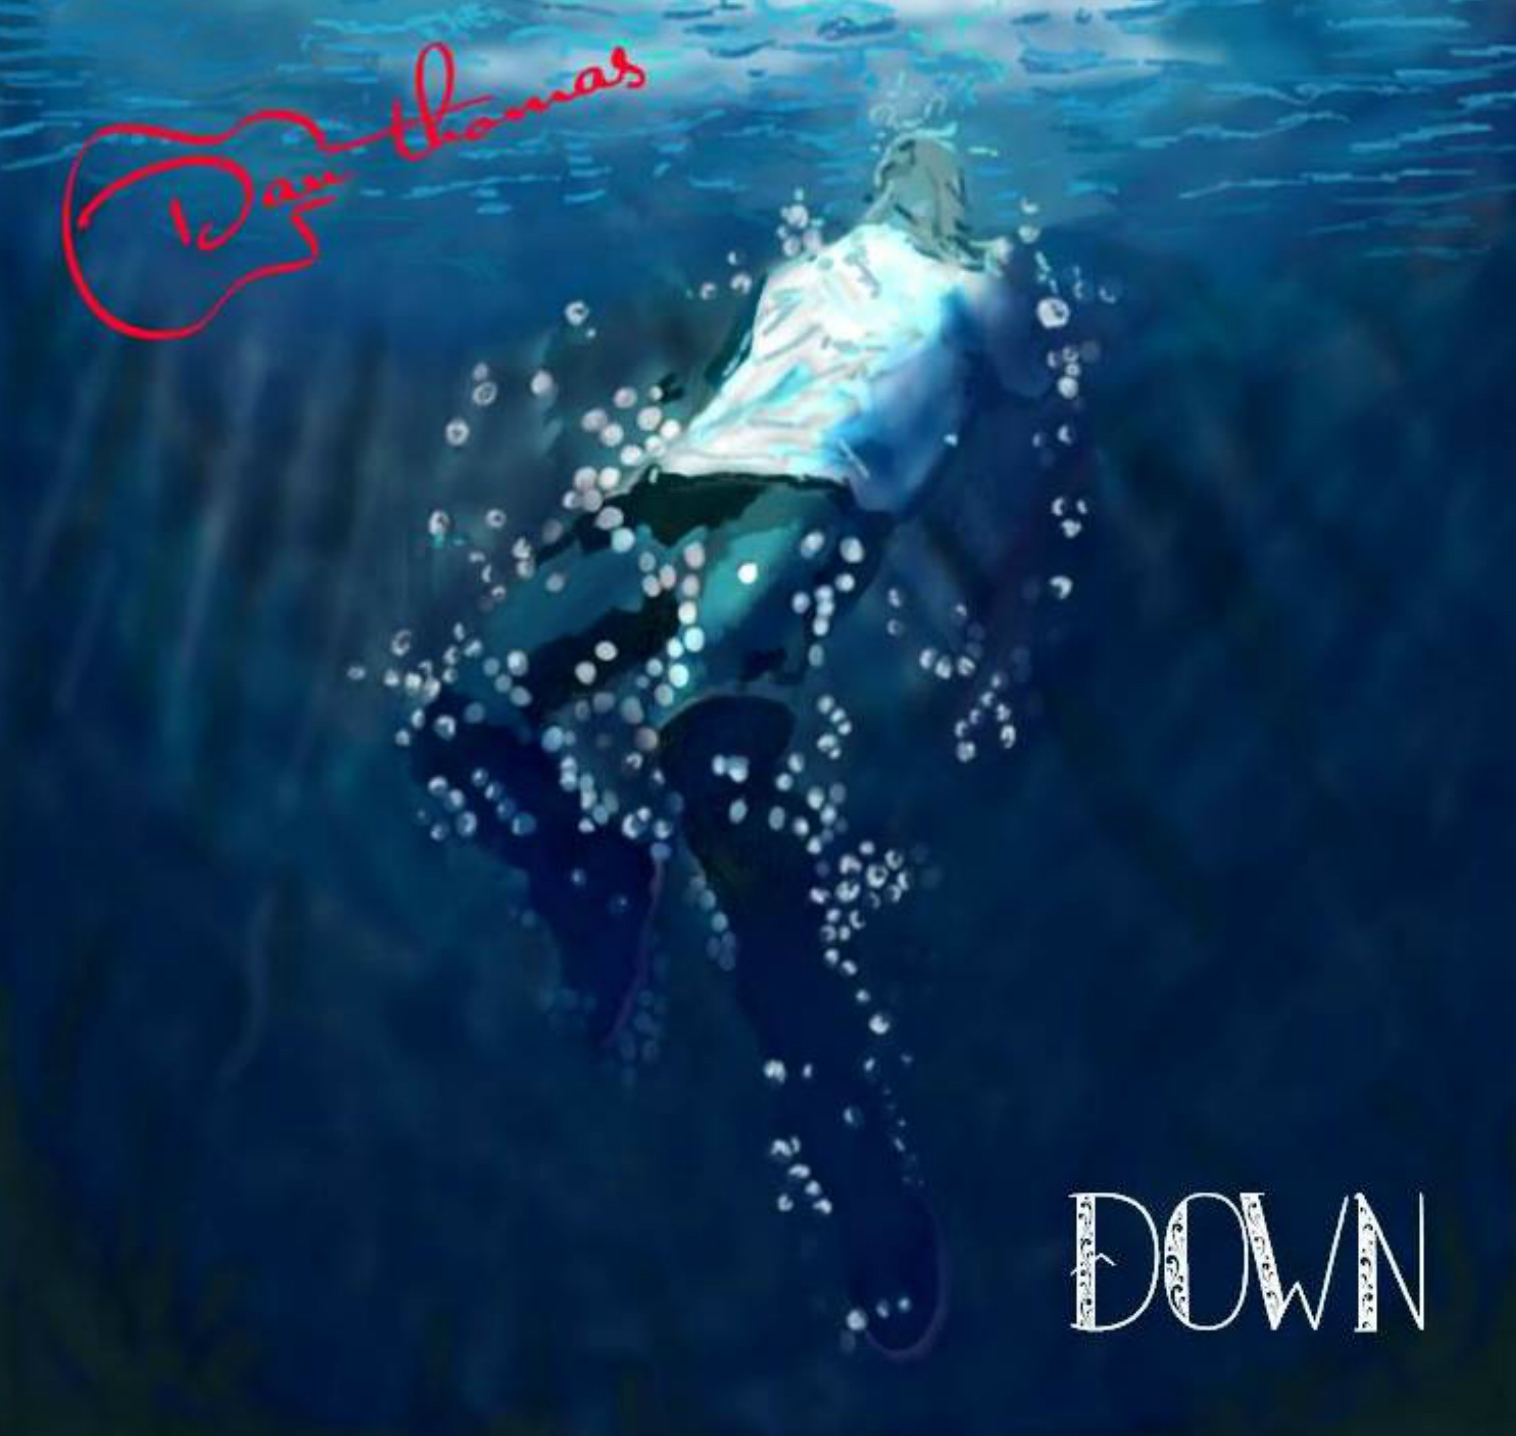 Down (single) - Available on:iTunes at http://apple.co/2vdEE9RSpotify at http://spoti.fi/2uQ7z1h